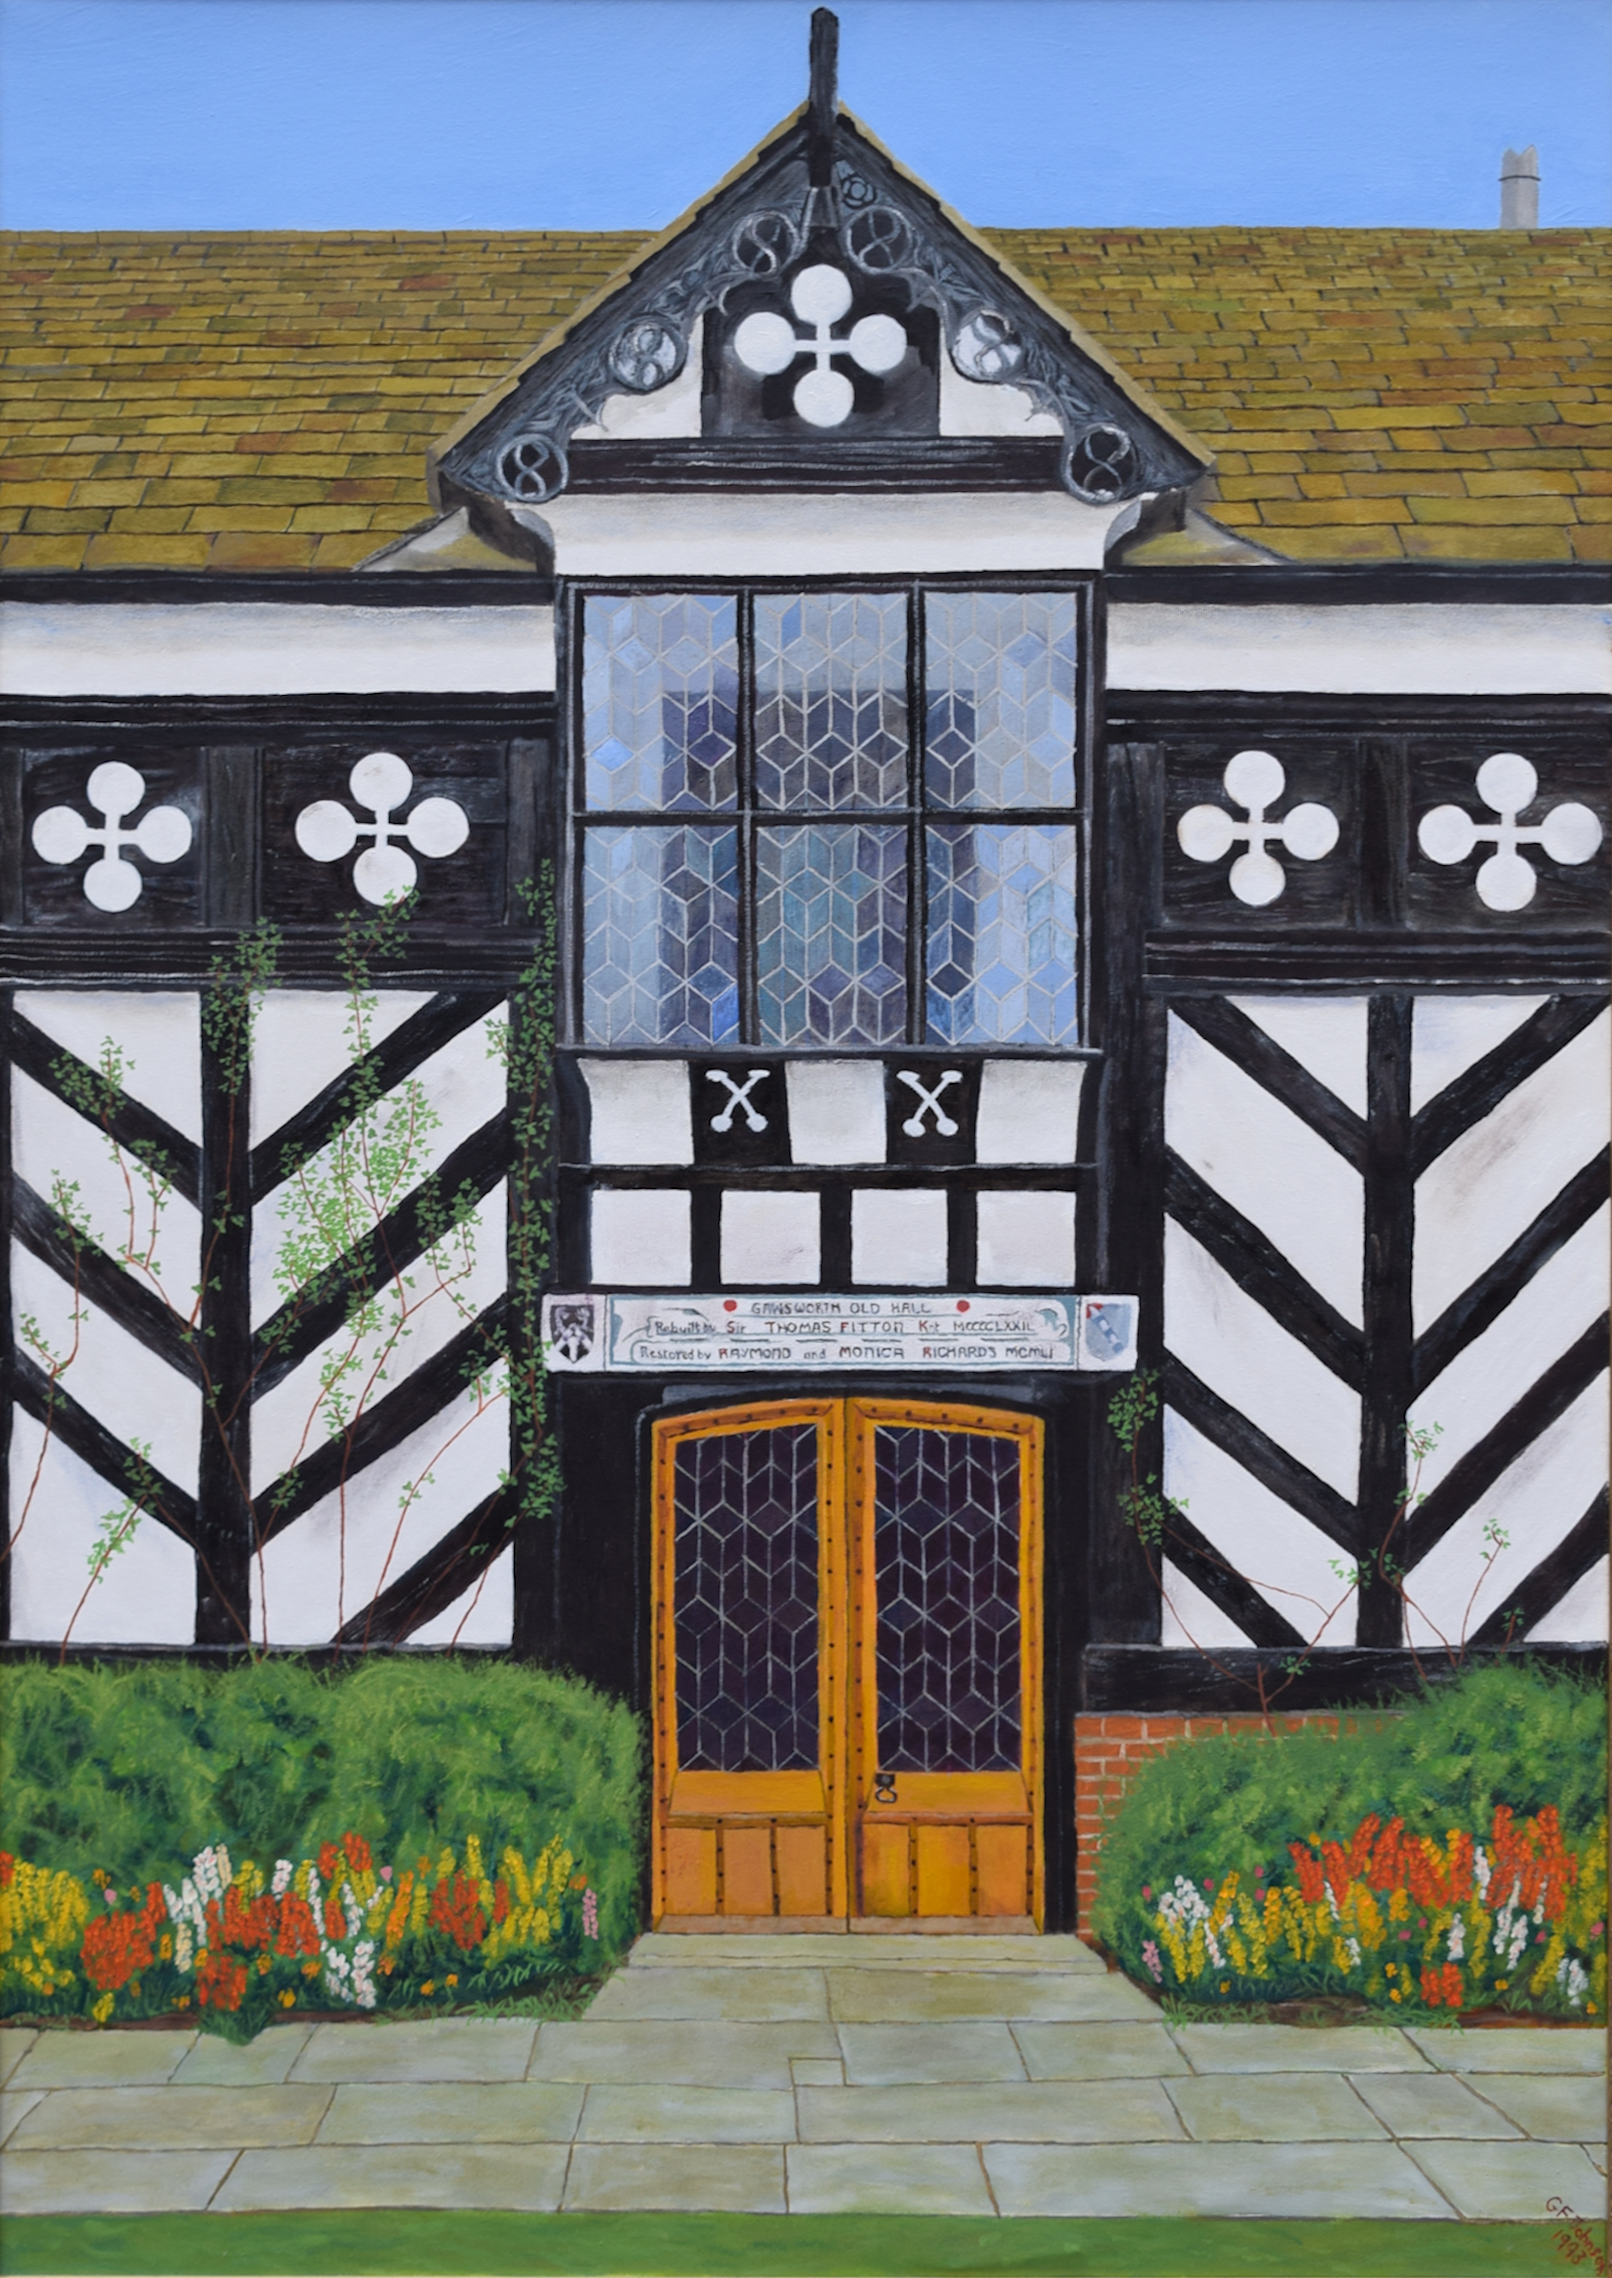 Gawsworth Hall painting